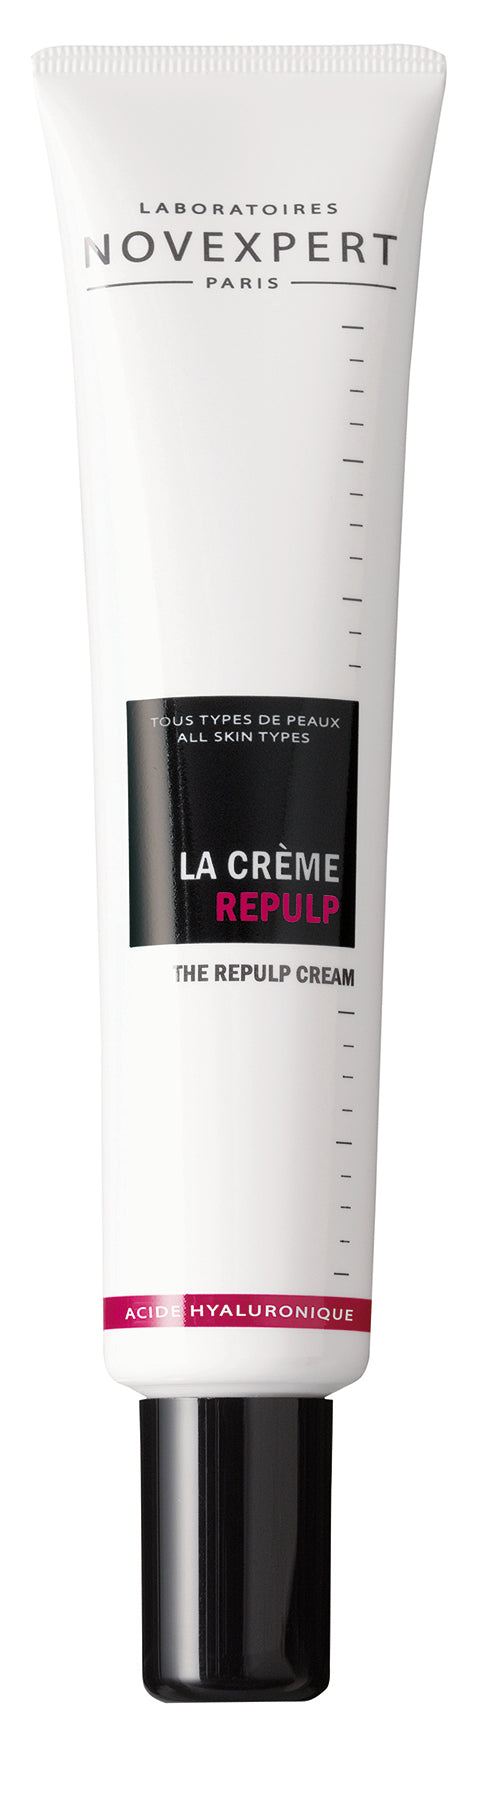 Novexpert The Repulp Cream - 40mlCosmetics Online IE